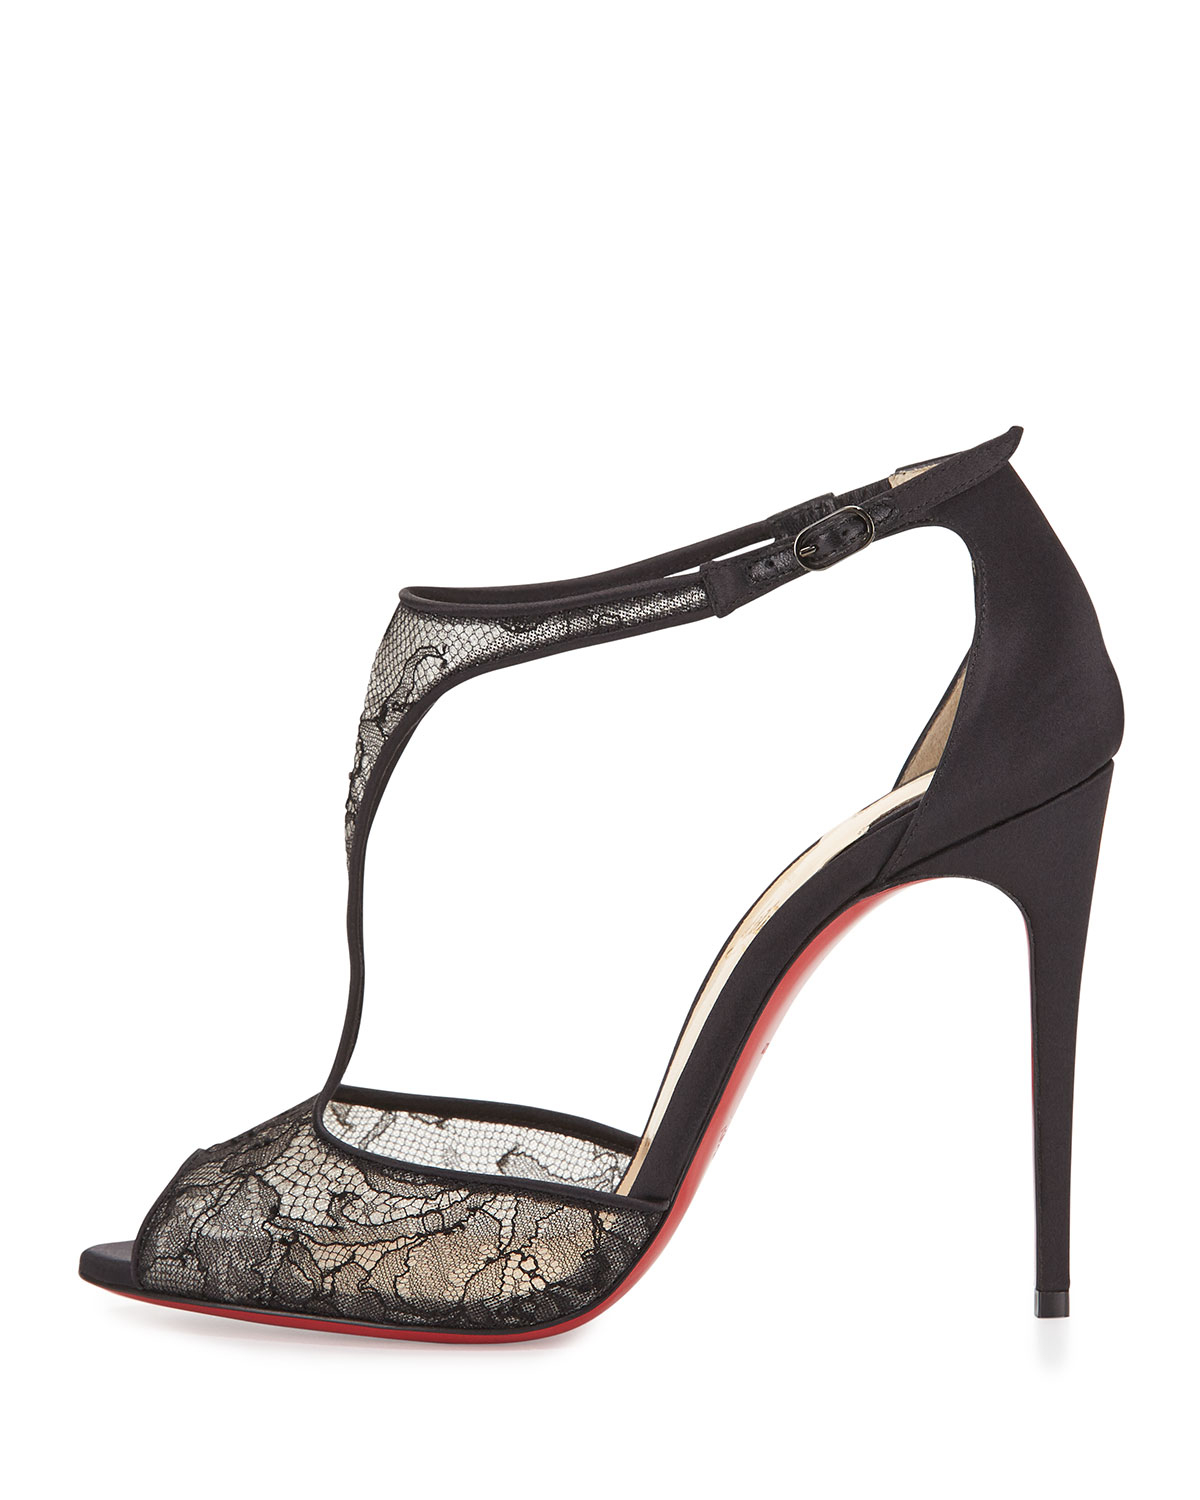 1d1f99bcf32 Lyst - Christian Louboutin Tiny Lace Red Sole T-strap Sandal in Black